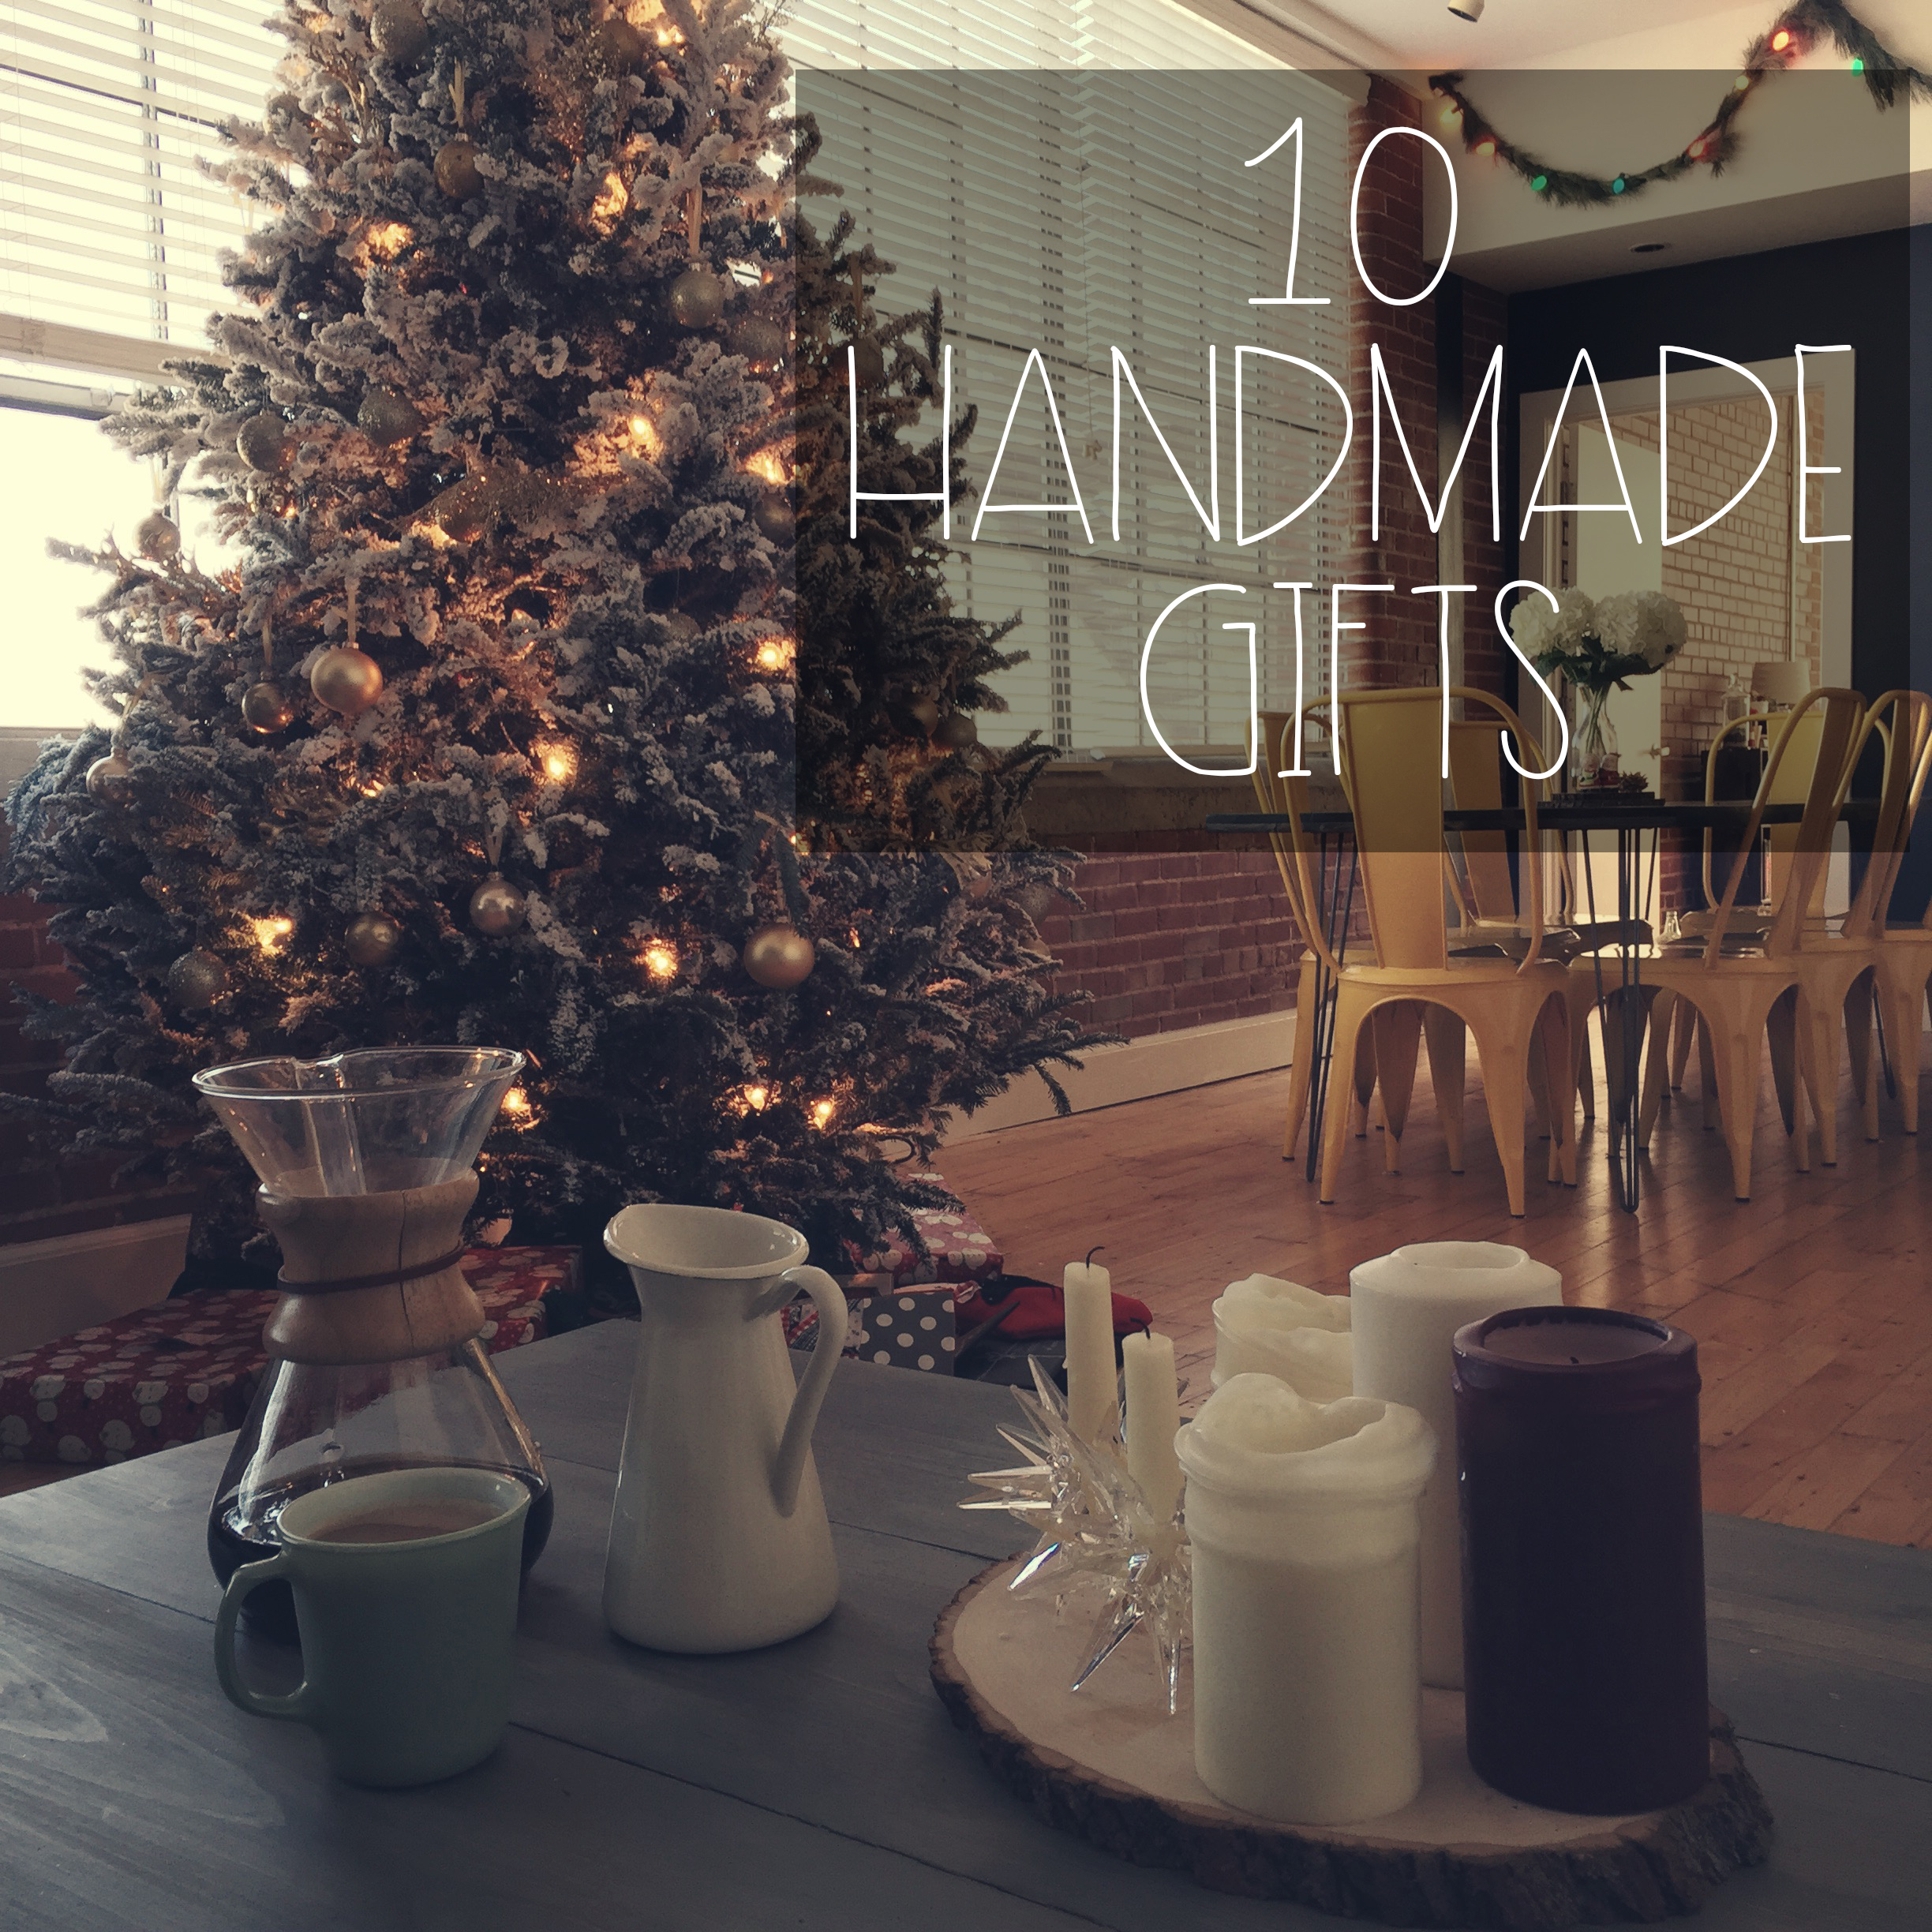 10 Handmade Gifts | Red Autumn Co